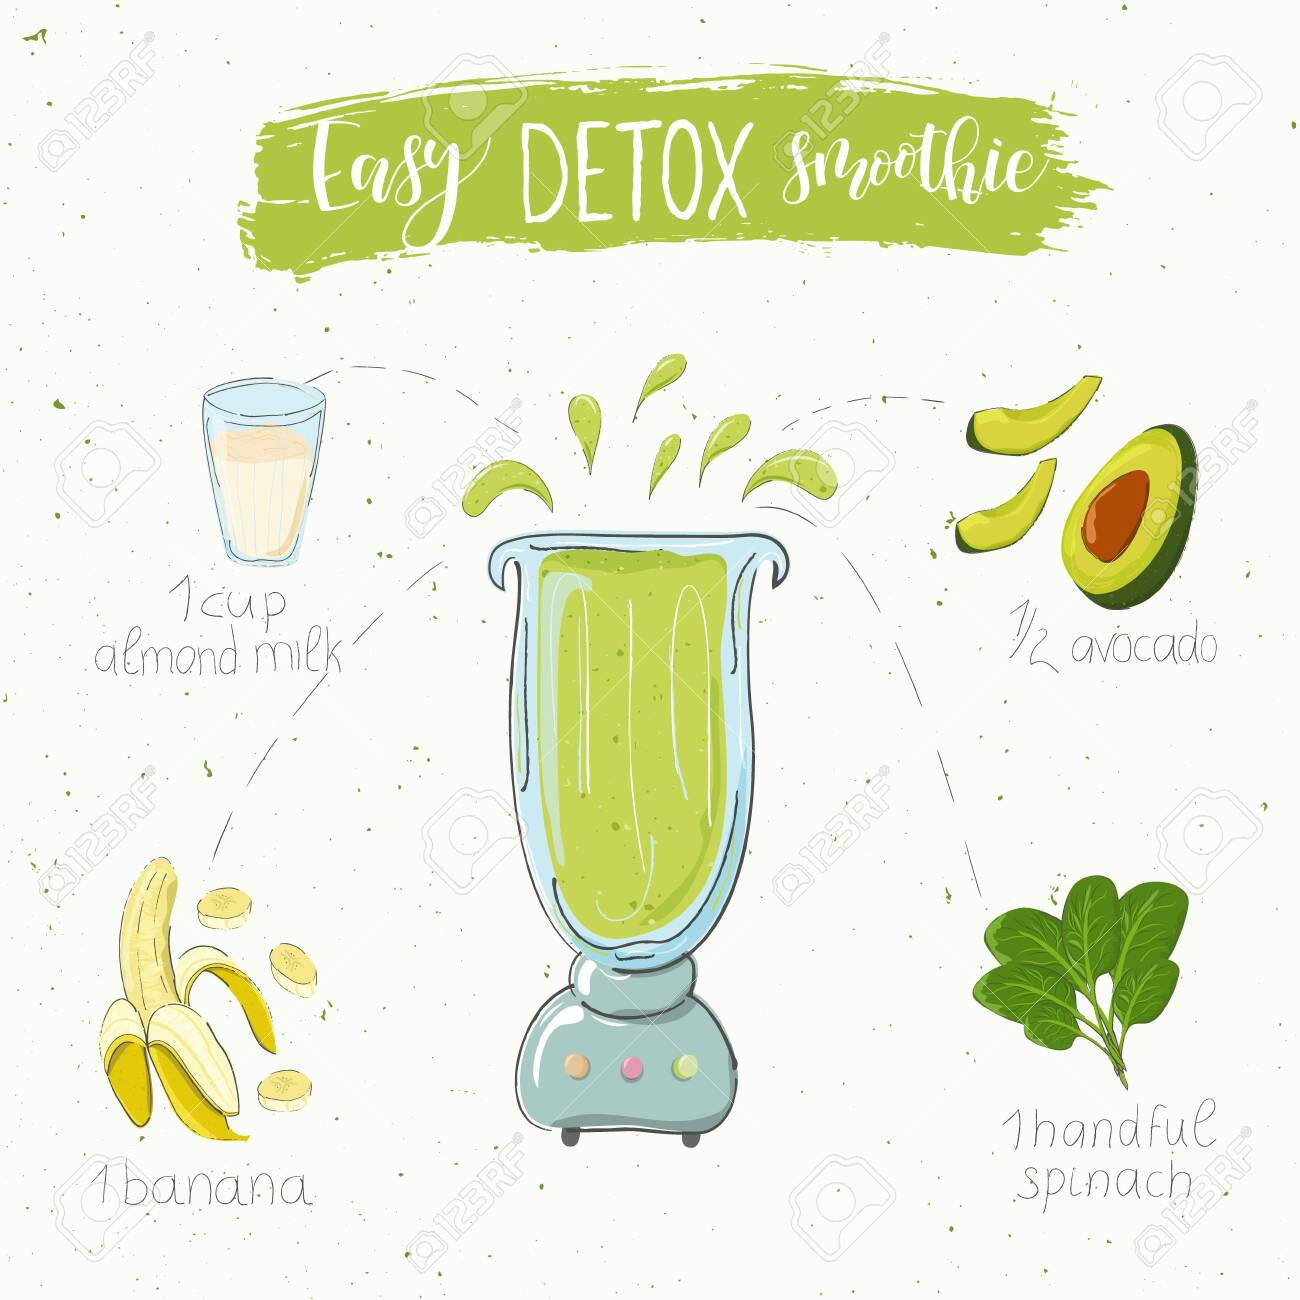 Illustration of detox smoothie recipe from spinach banana and avocado in a blender. Vector - 140279733